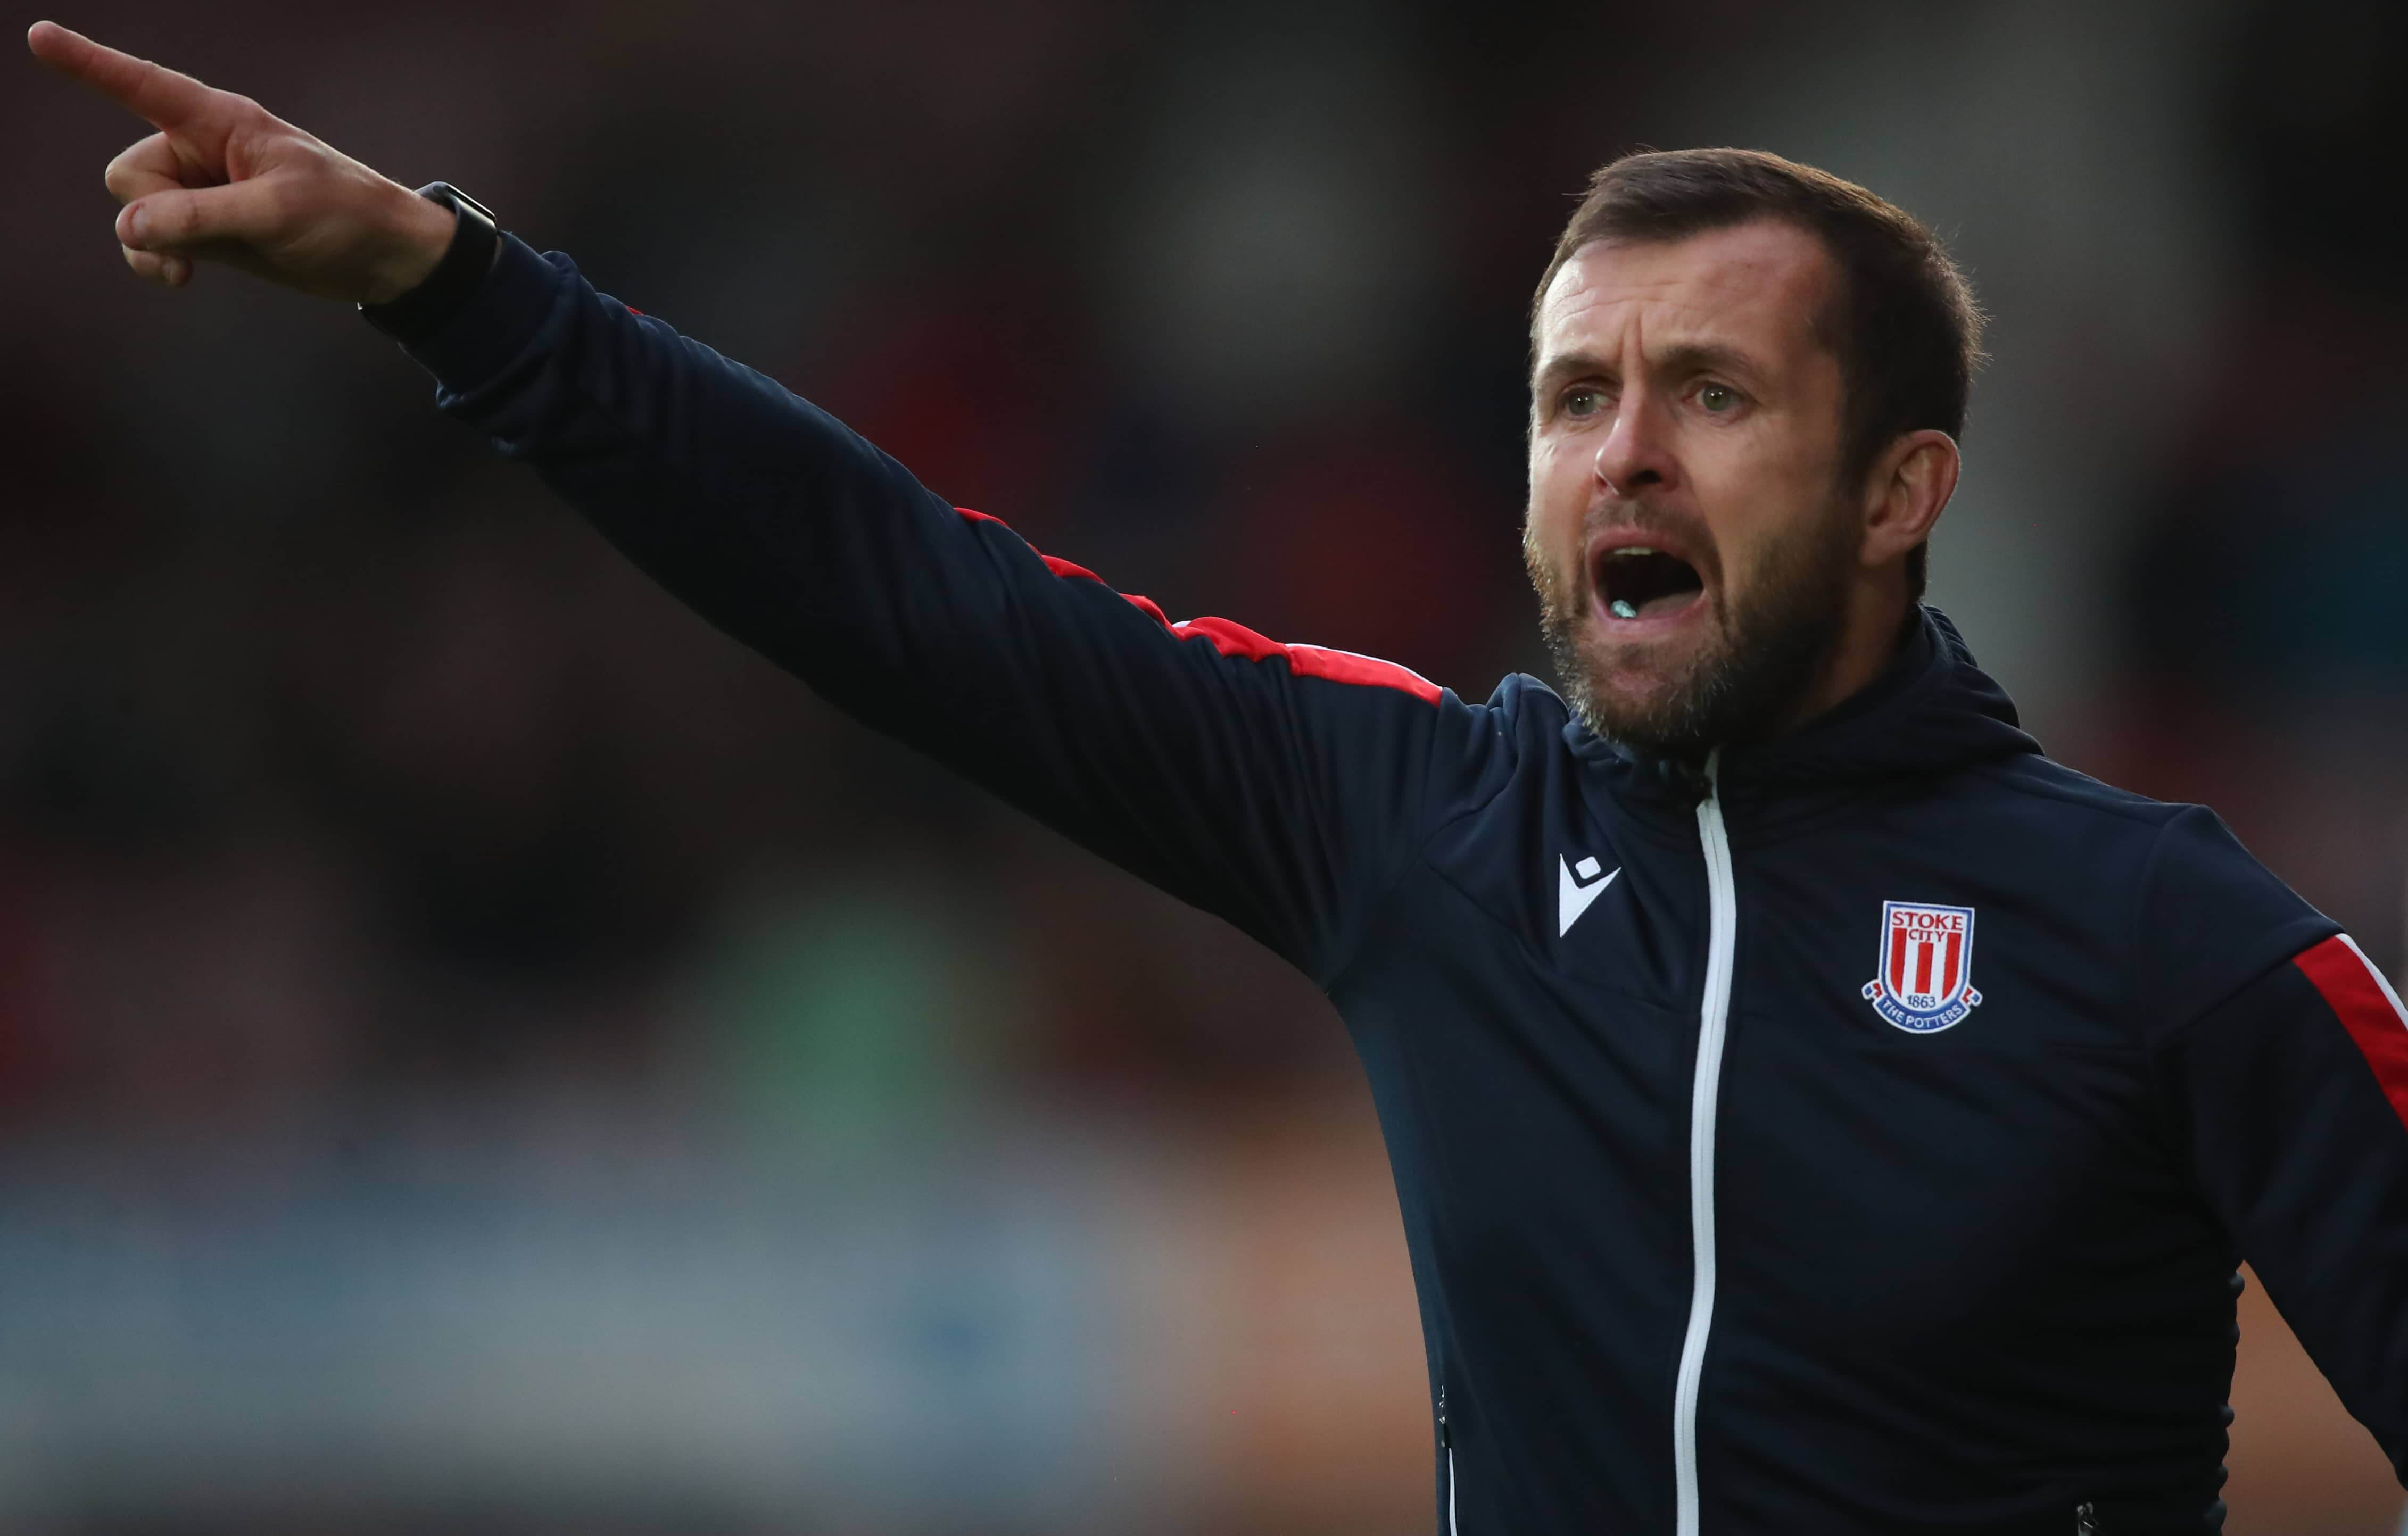 The Bear Pit TV: Time To Stop The Boos & Write A New Chapter At Stoke